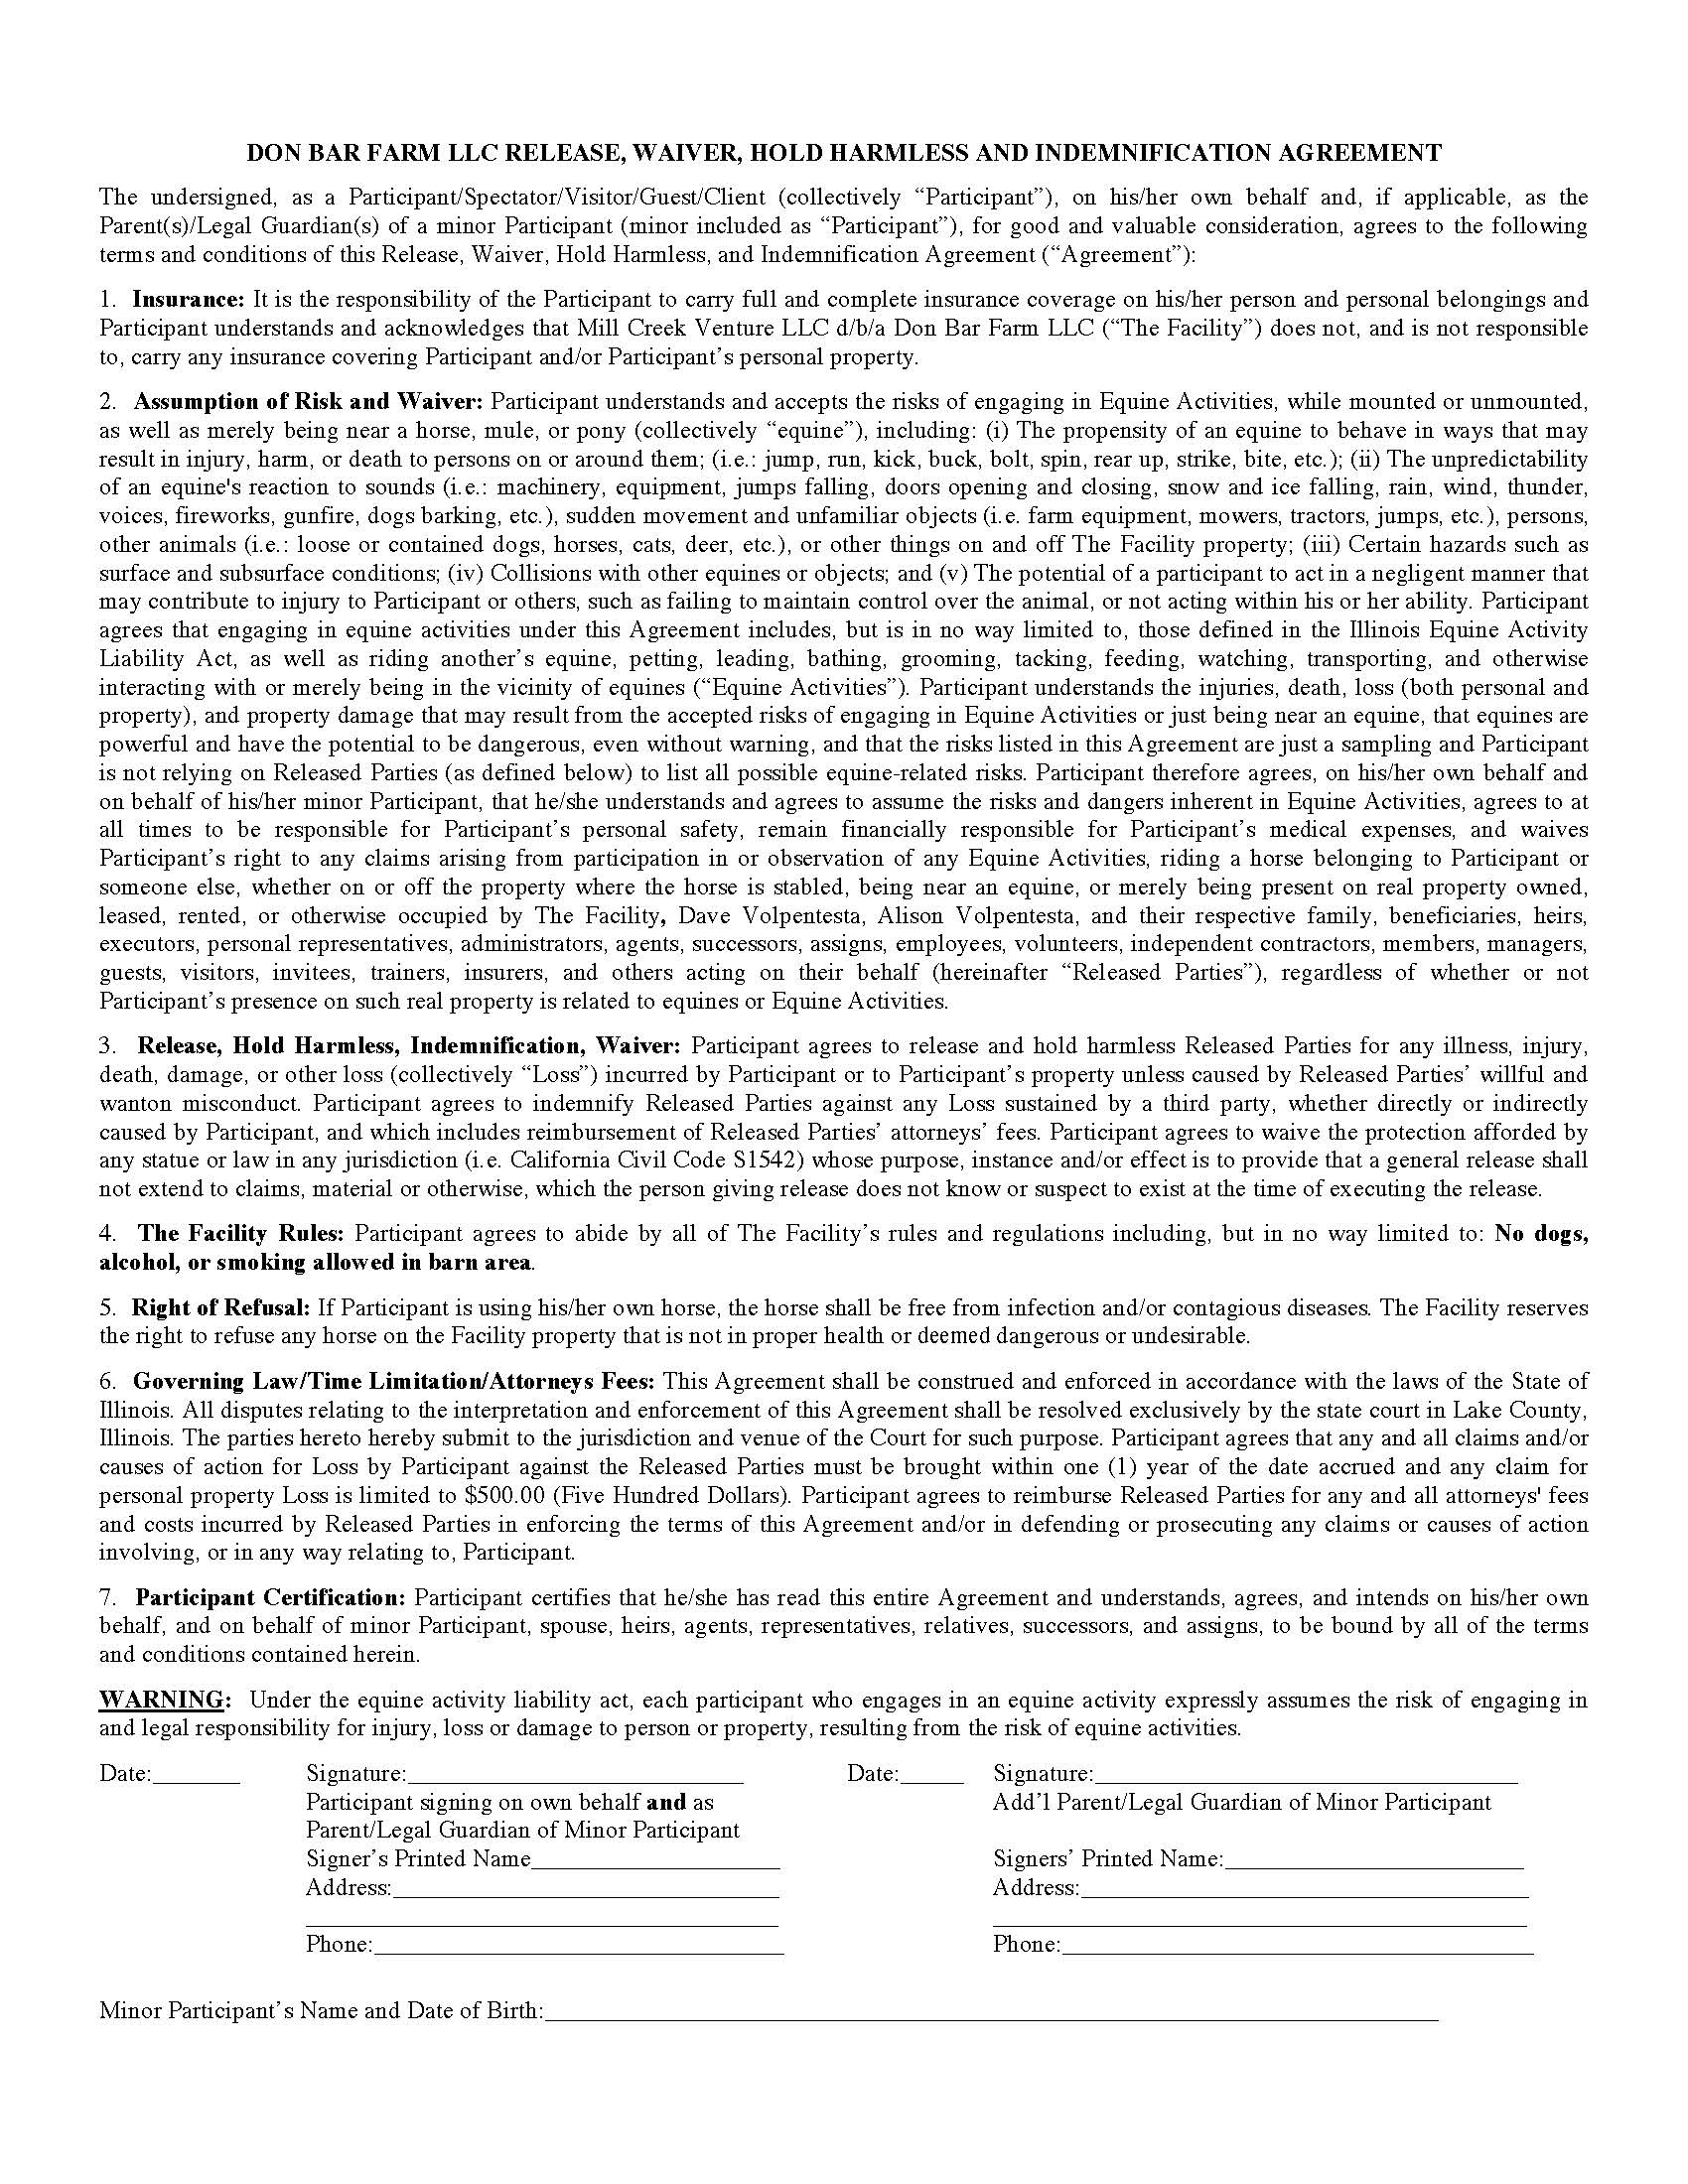 Helmet Waiver Form  Legal Liability Waiver Form